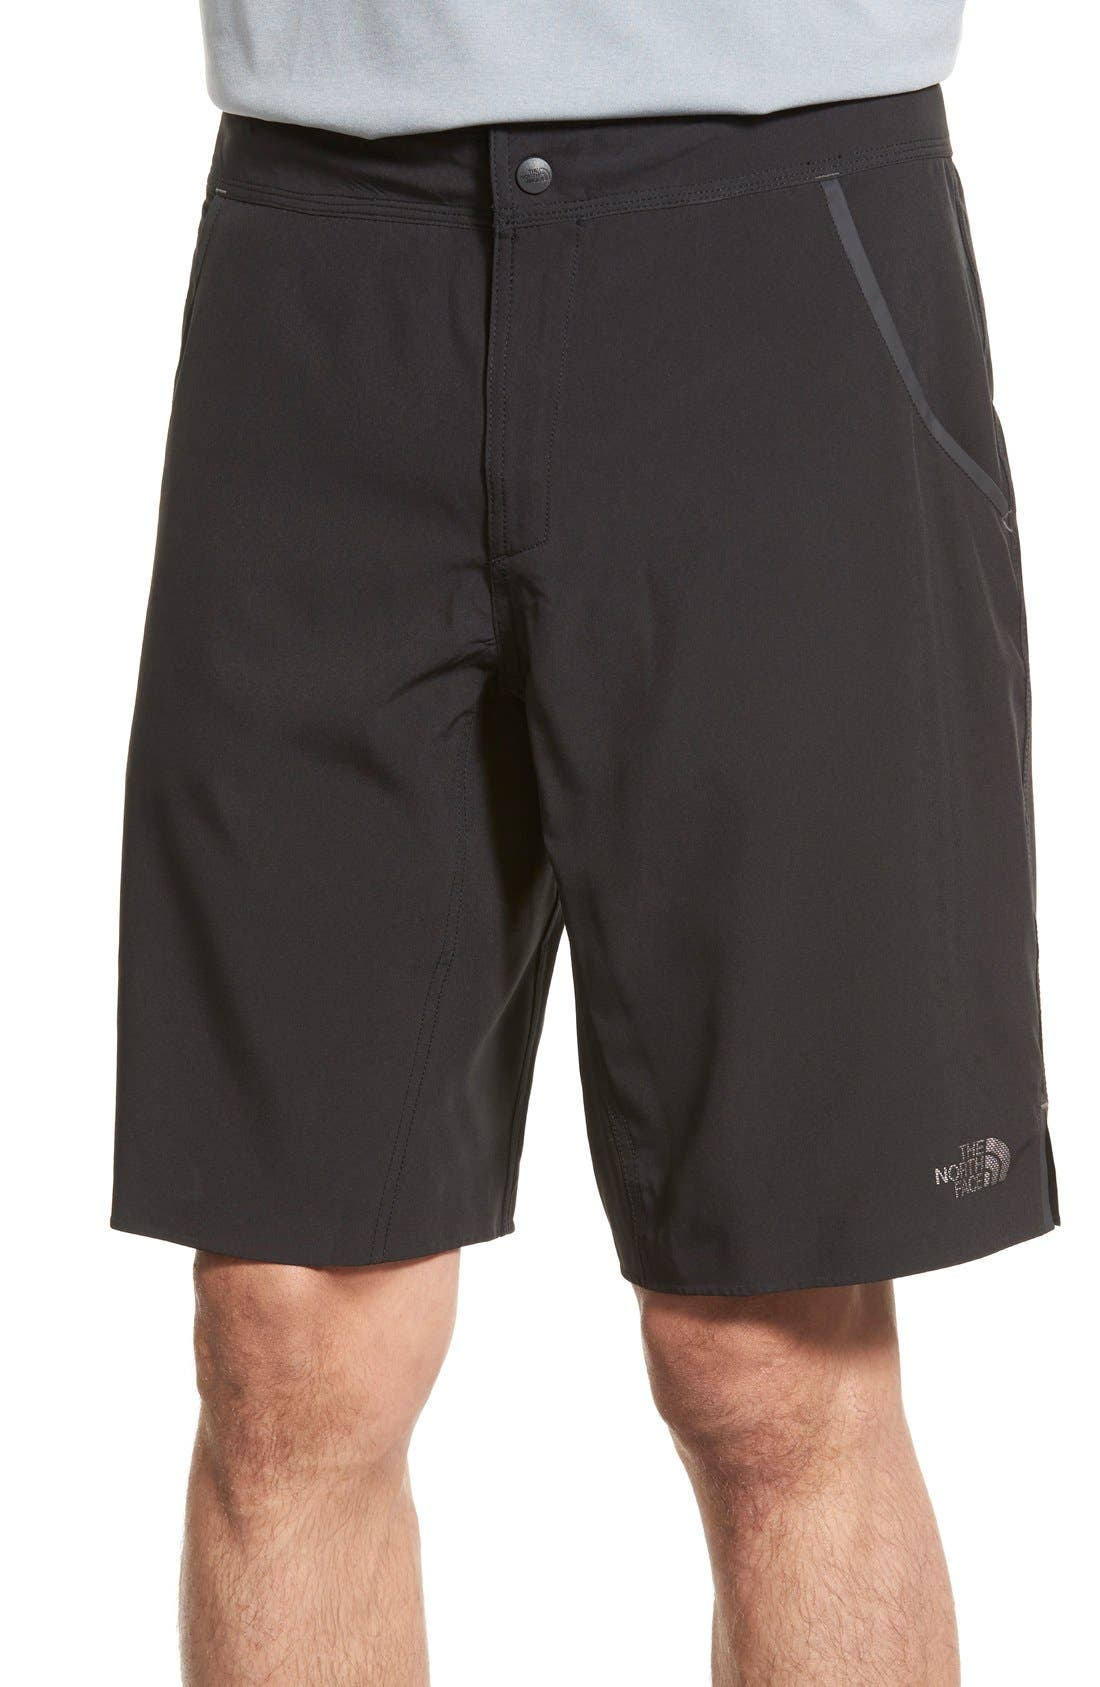 The North Face 'Kilowatt' Athletic Training Shorts